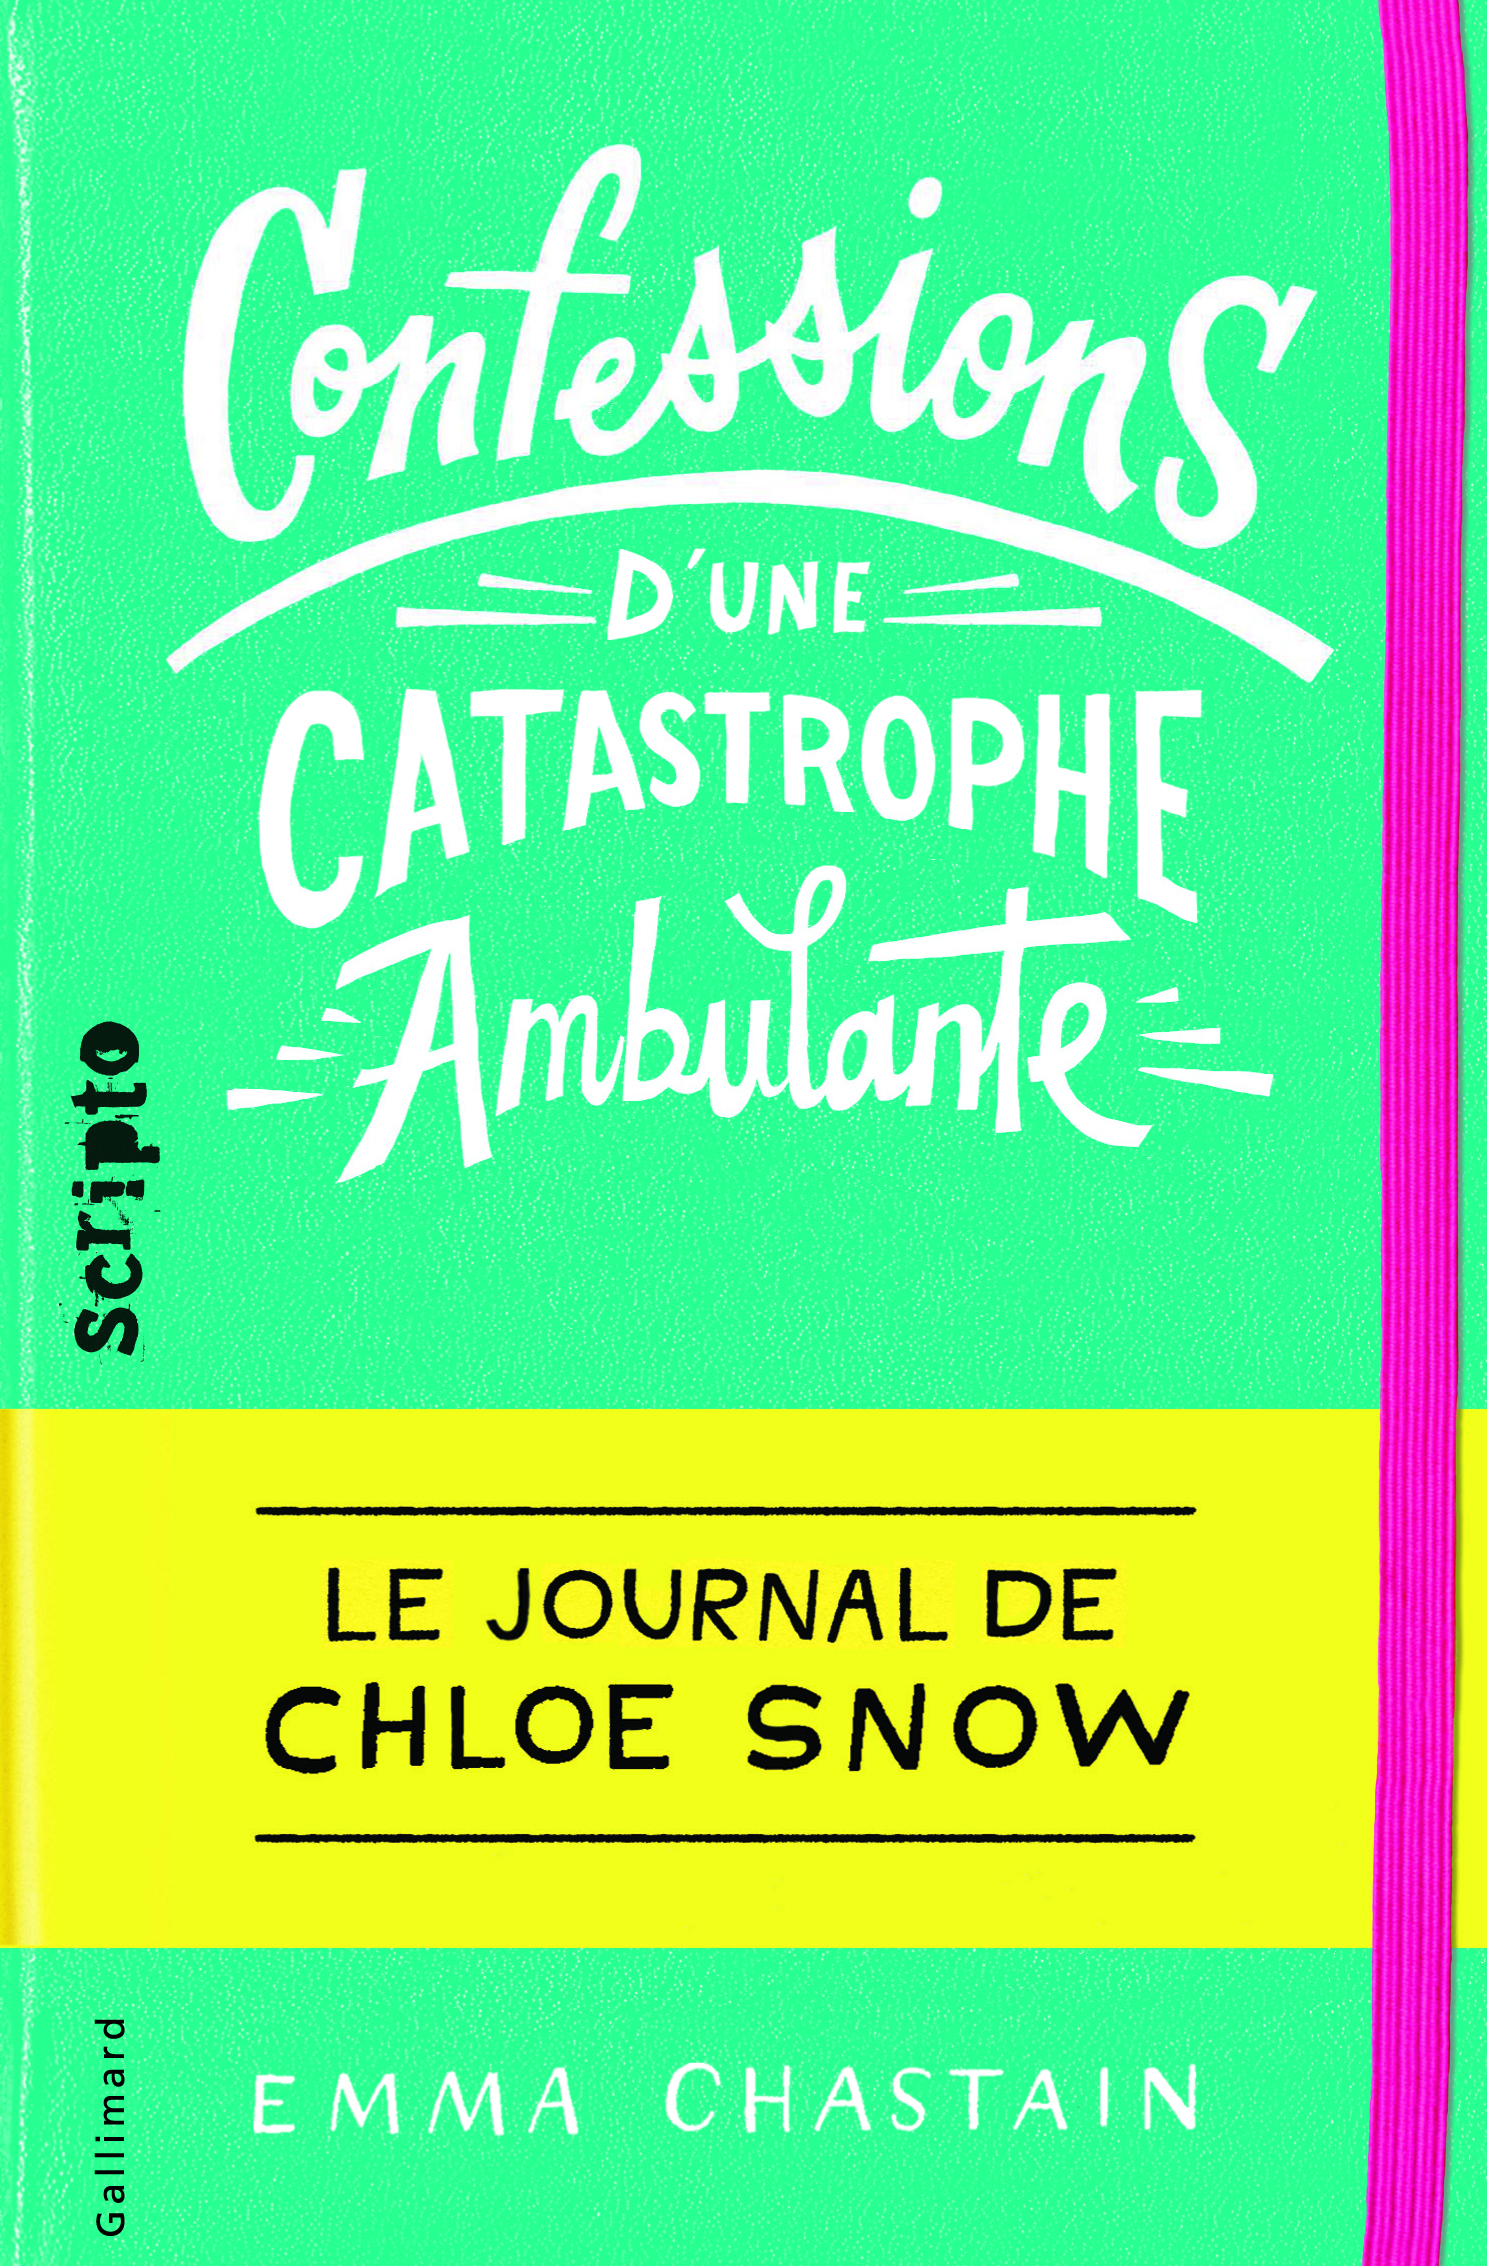 LE JOURNAL DE CHLOE SNOW - CONFESSIONS D'UNE CATASTROPHE AMBULANTE